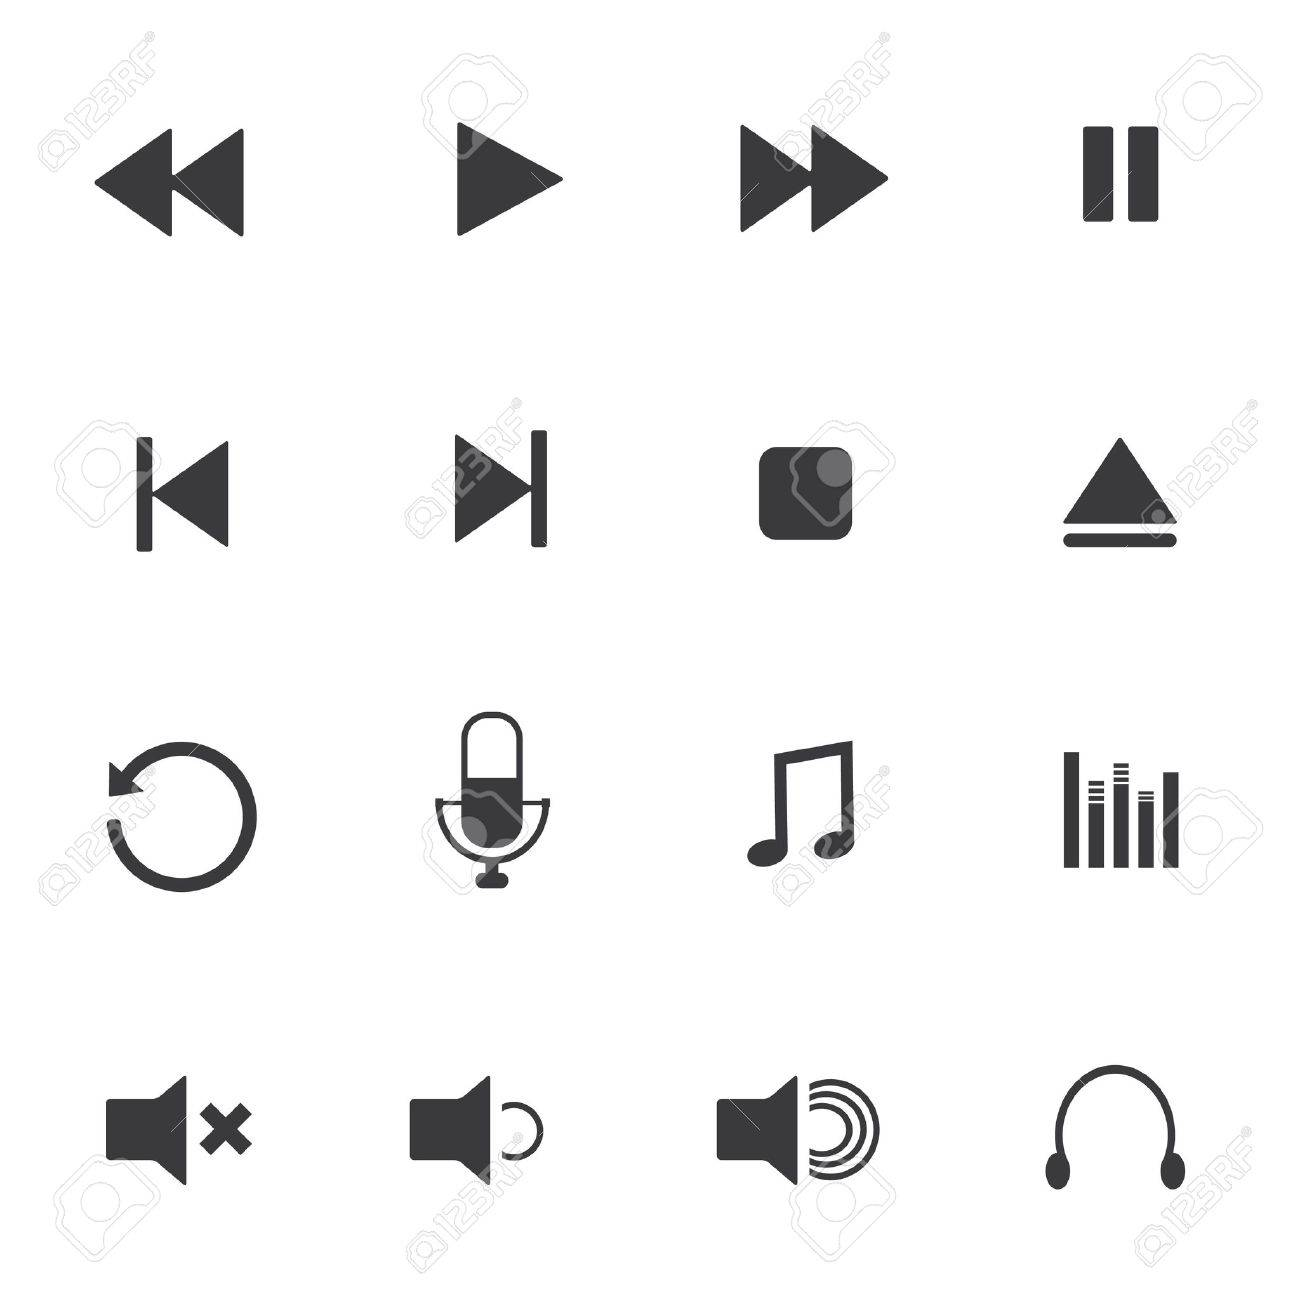 Media player icons Stock Vector - 20733793